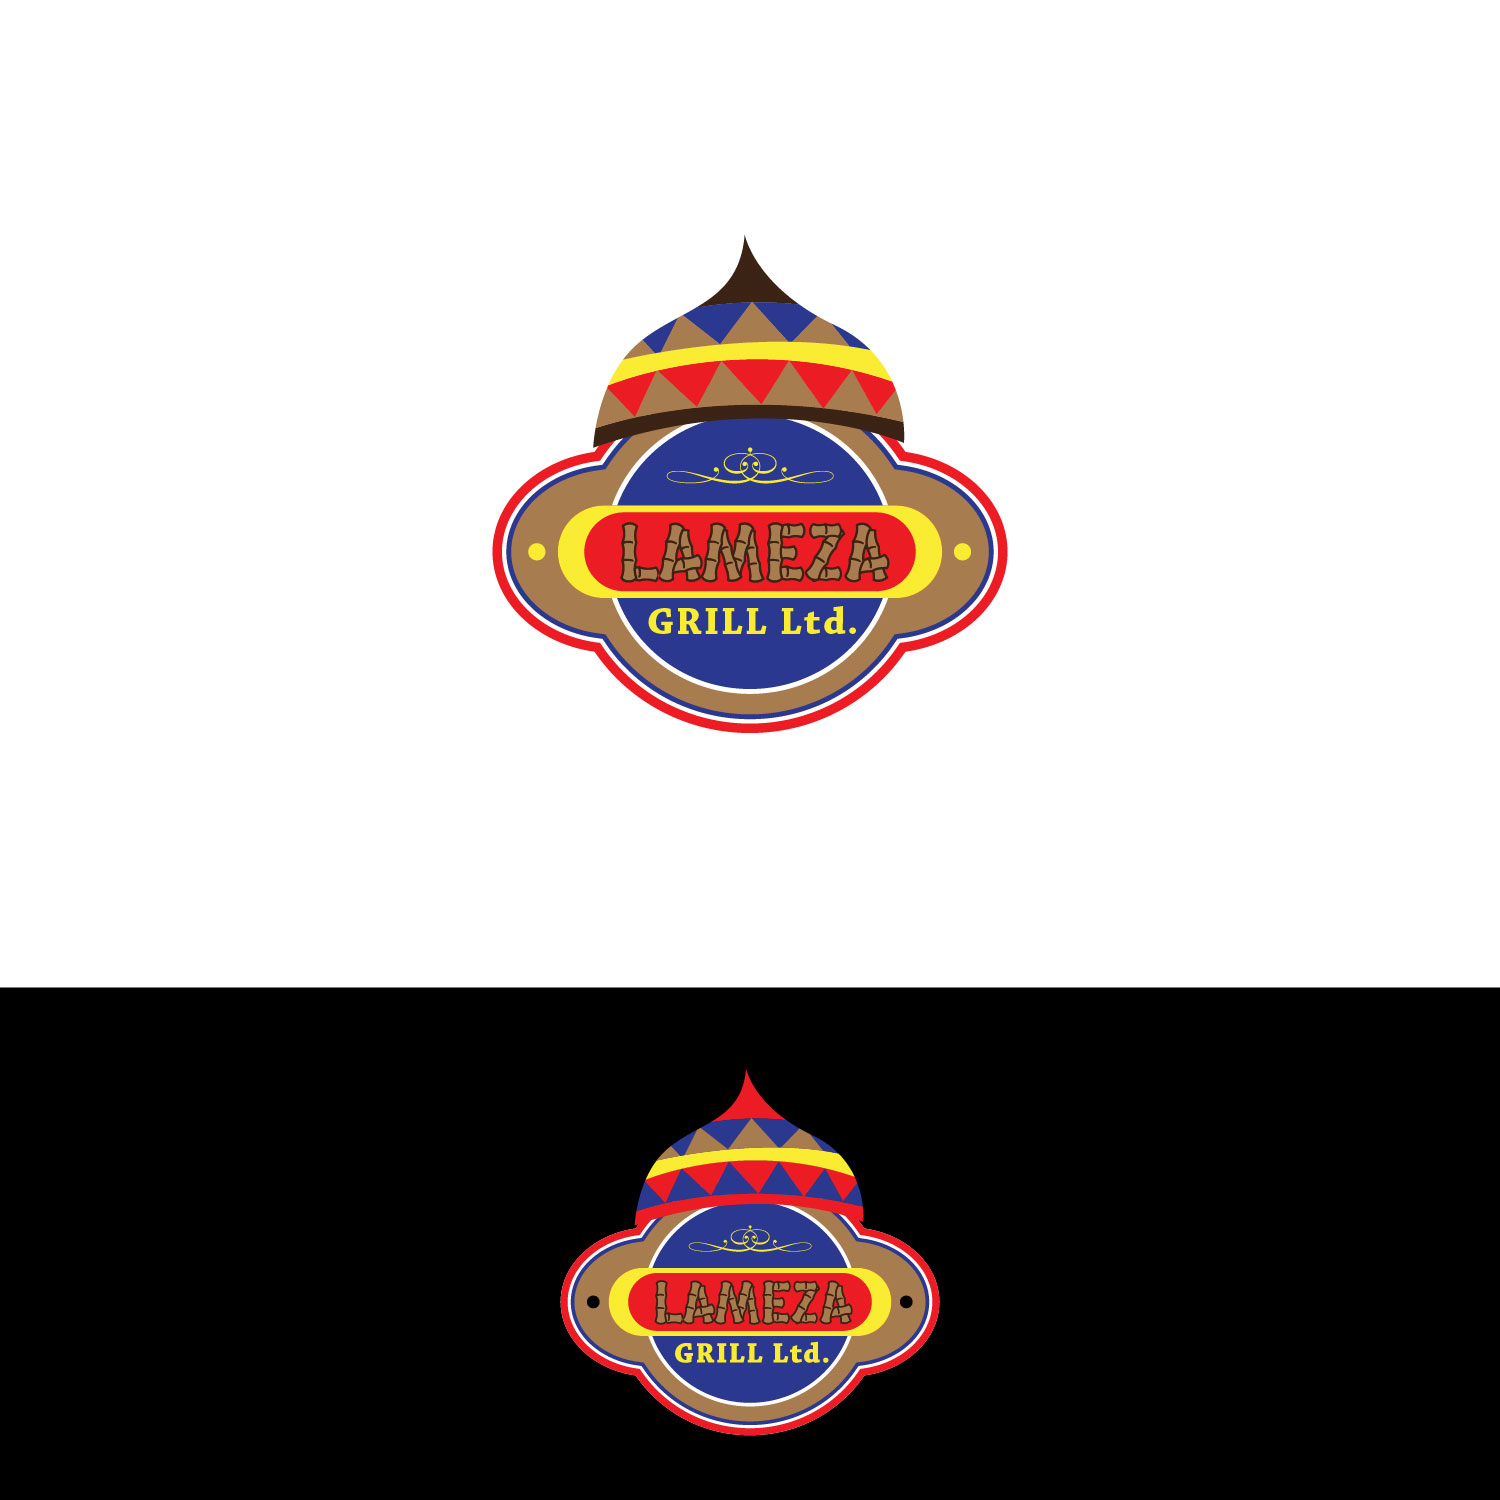 Logo Design by lagalag - Entry No. 41 in the Logo Design Contest Inspiring Logo Design for La Meza Grill Ltd..